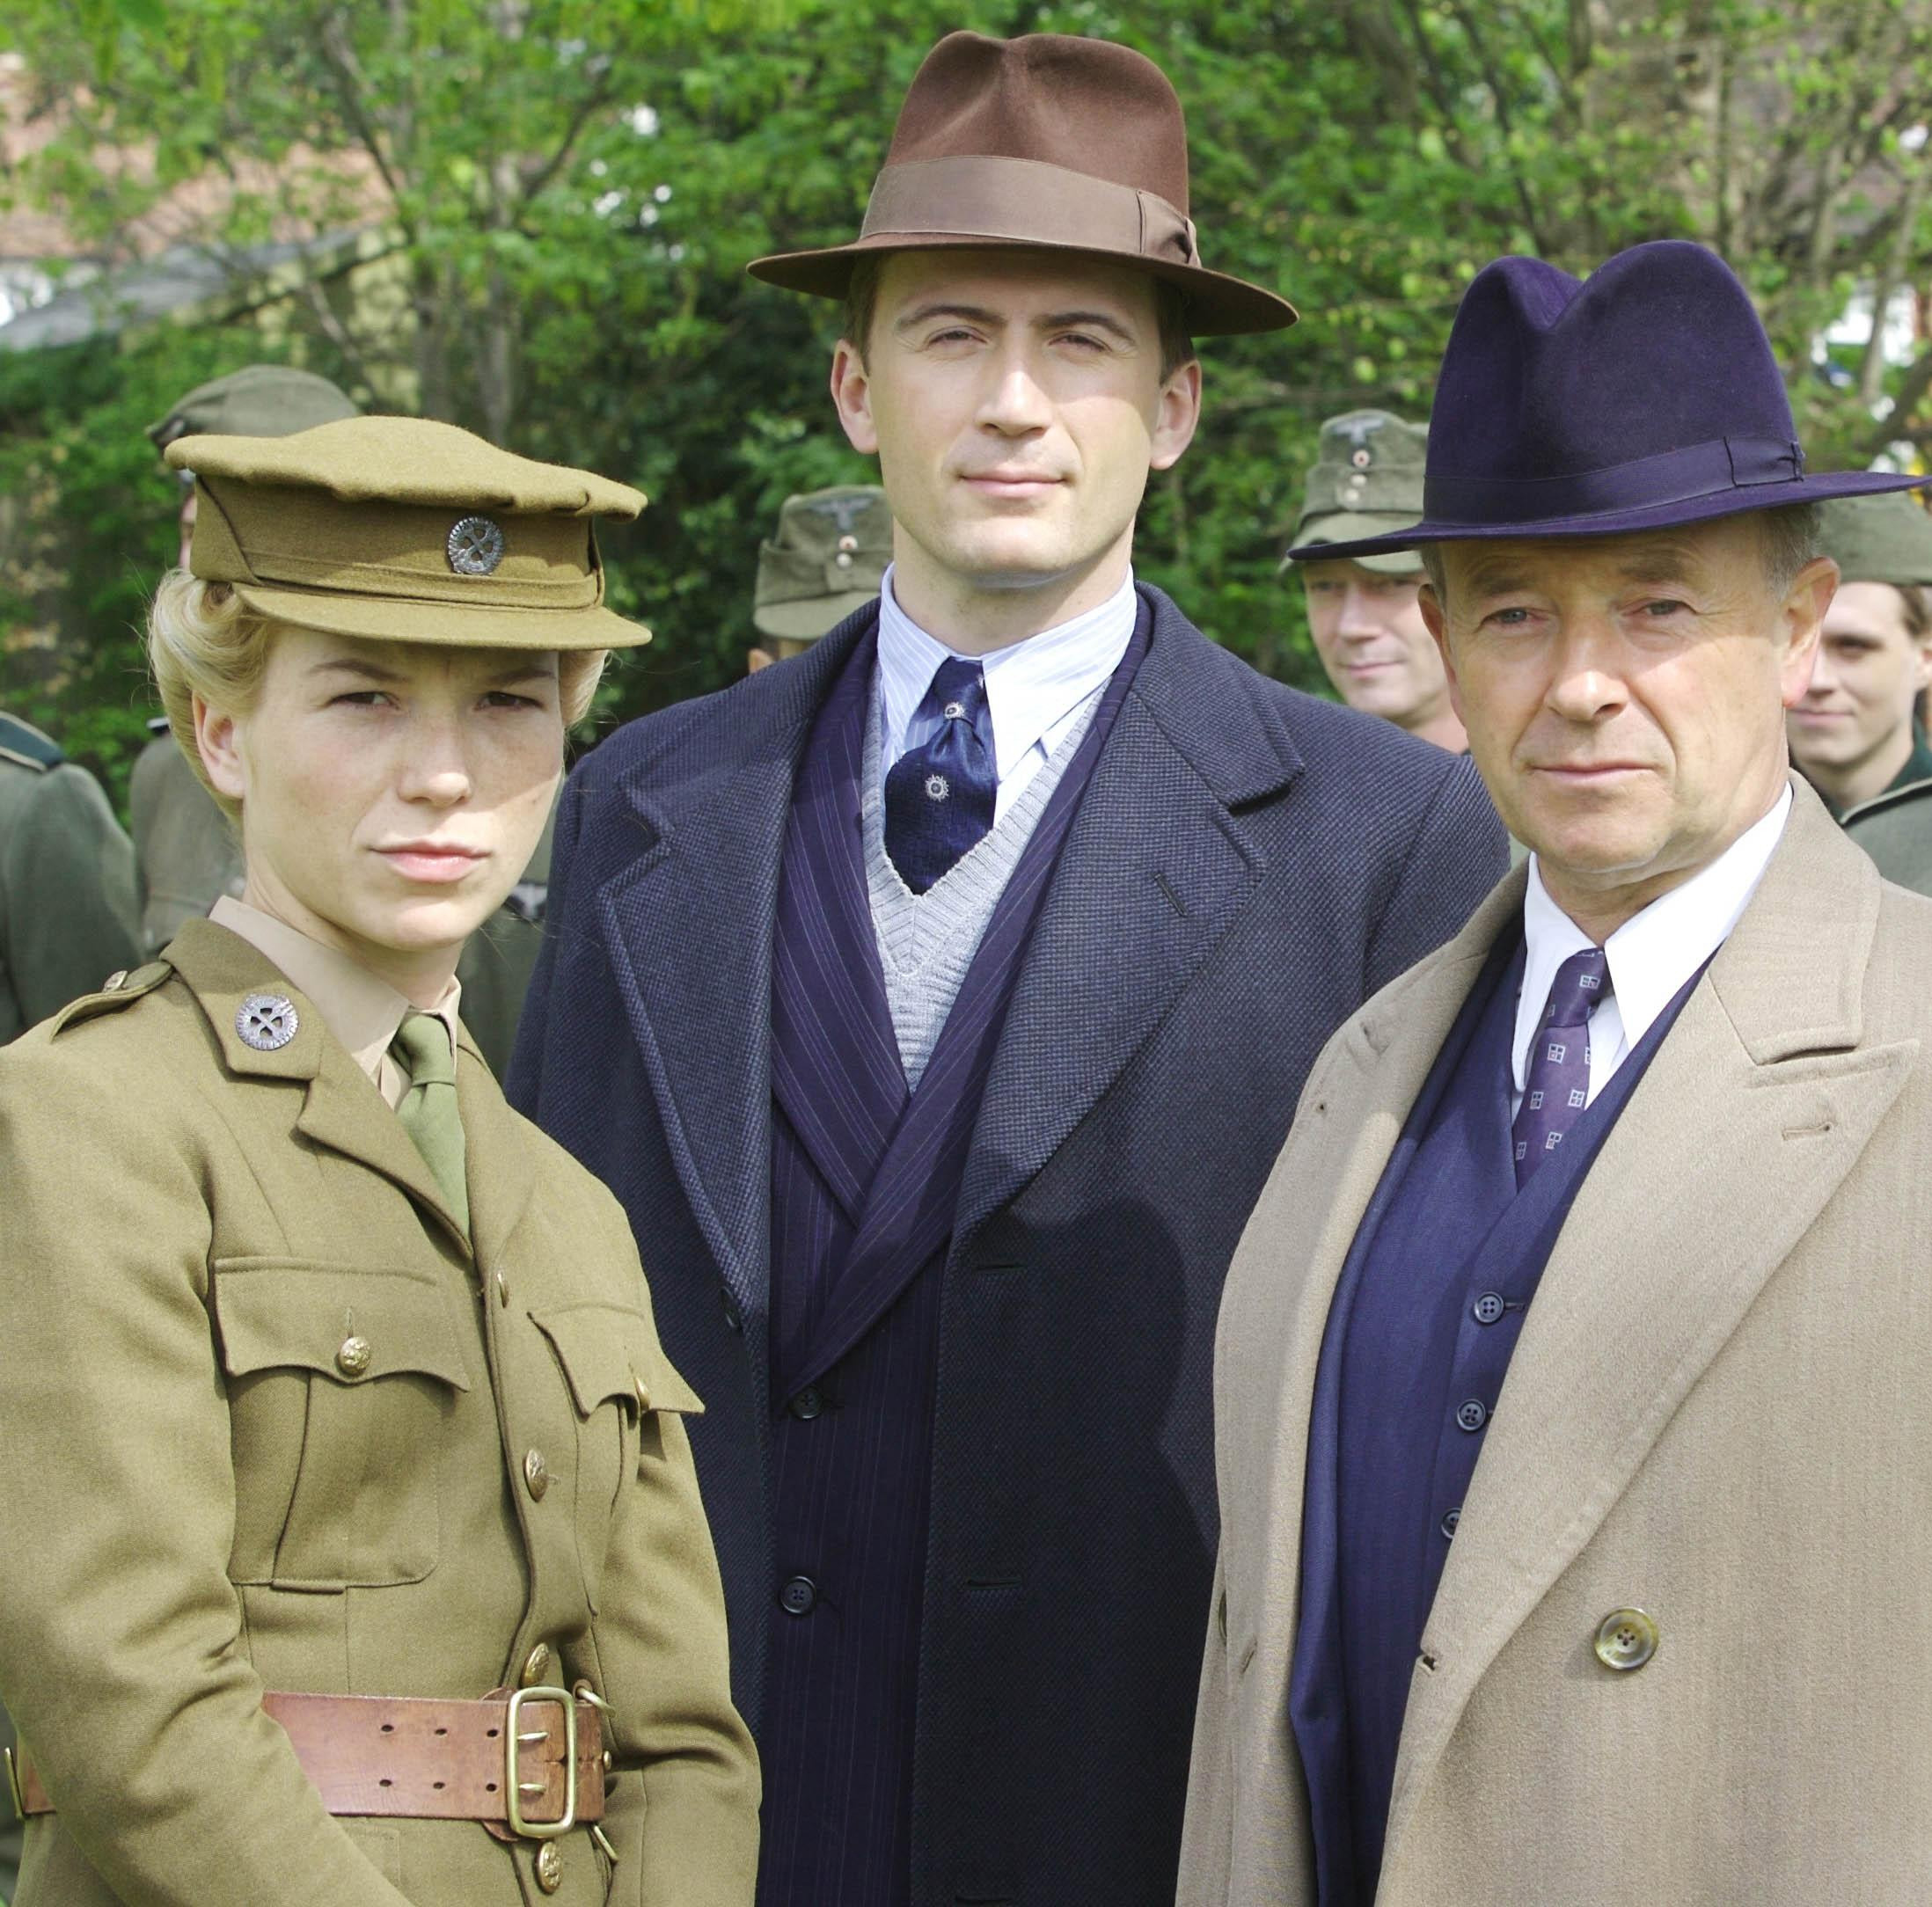 Foyle's War might be over - but not his TV series